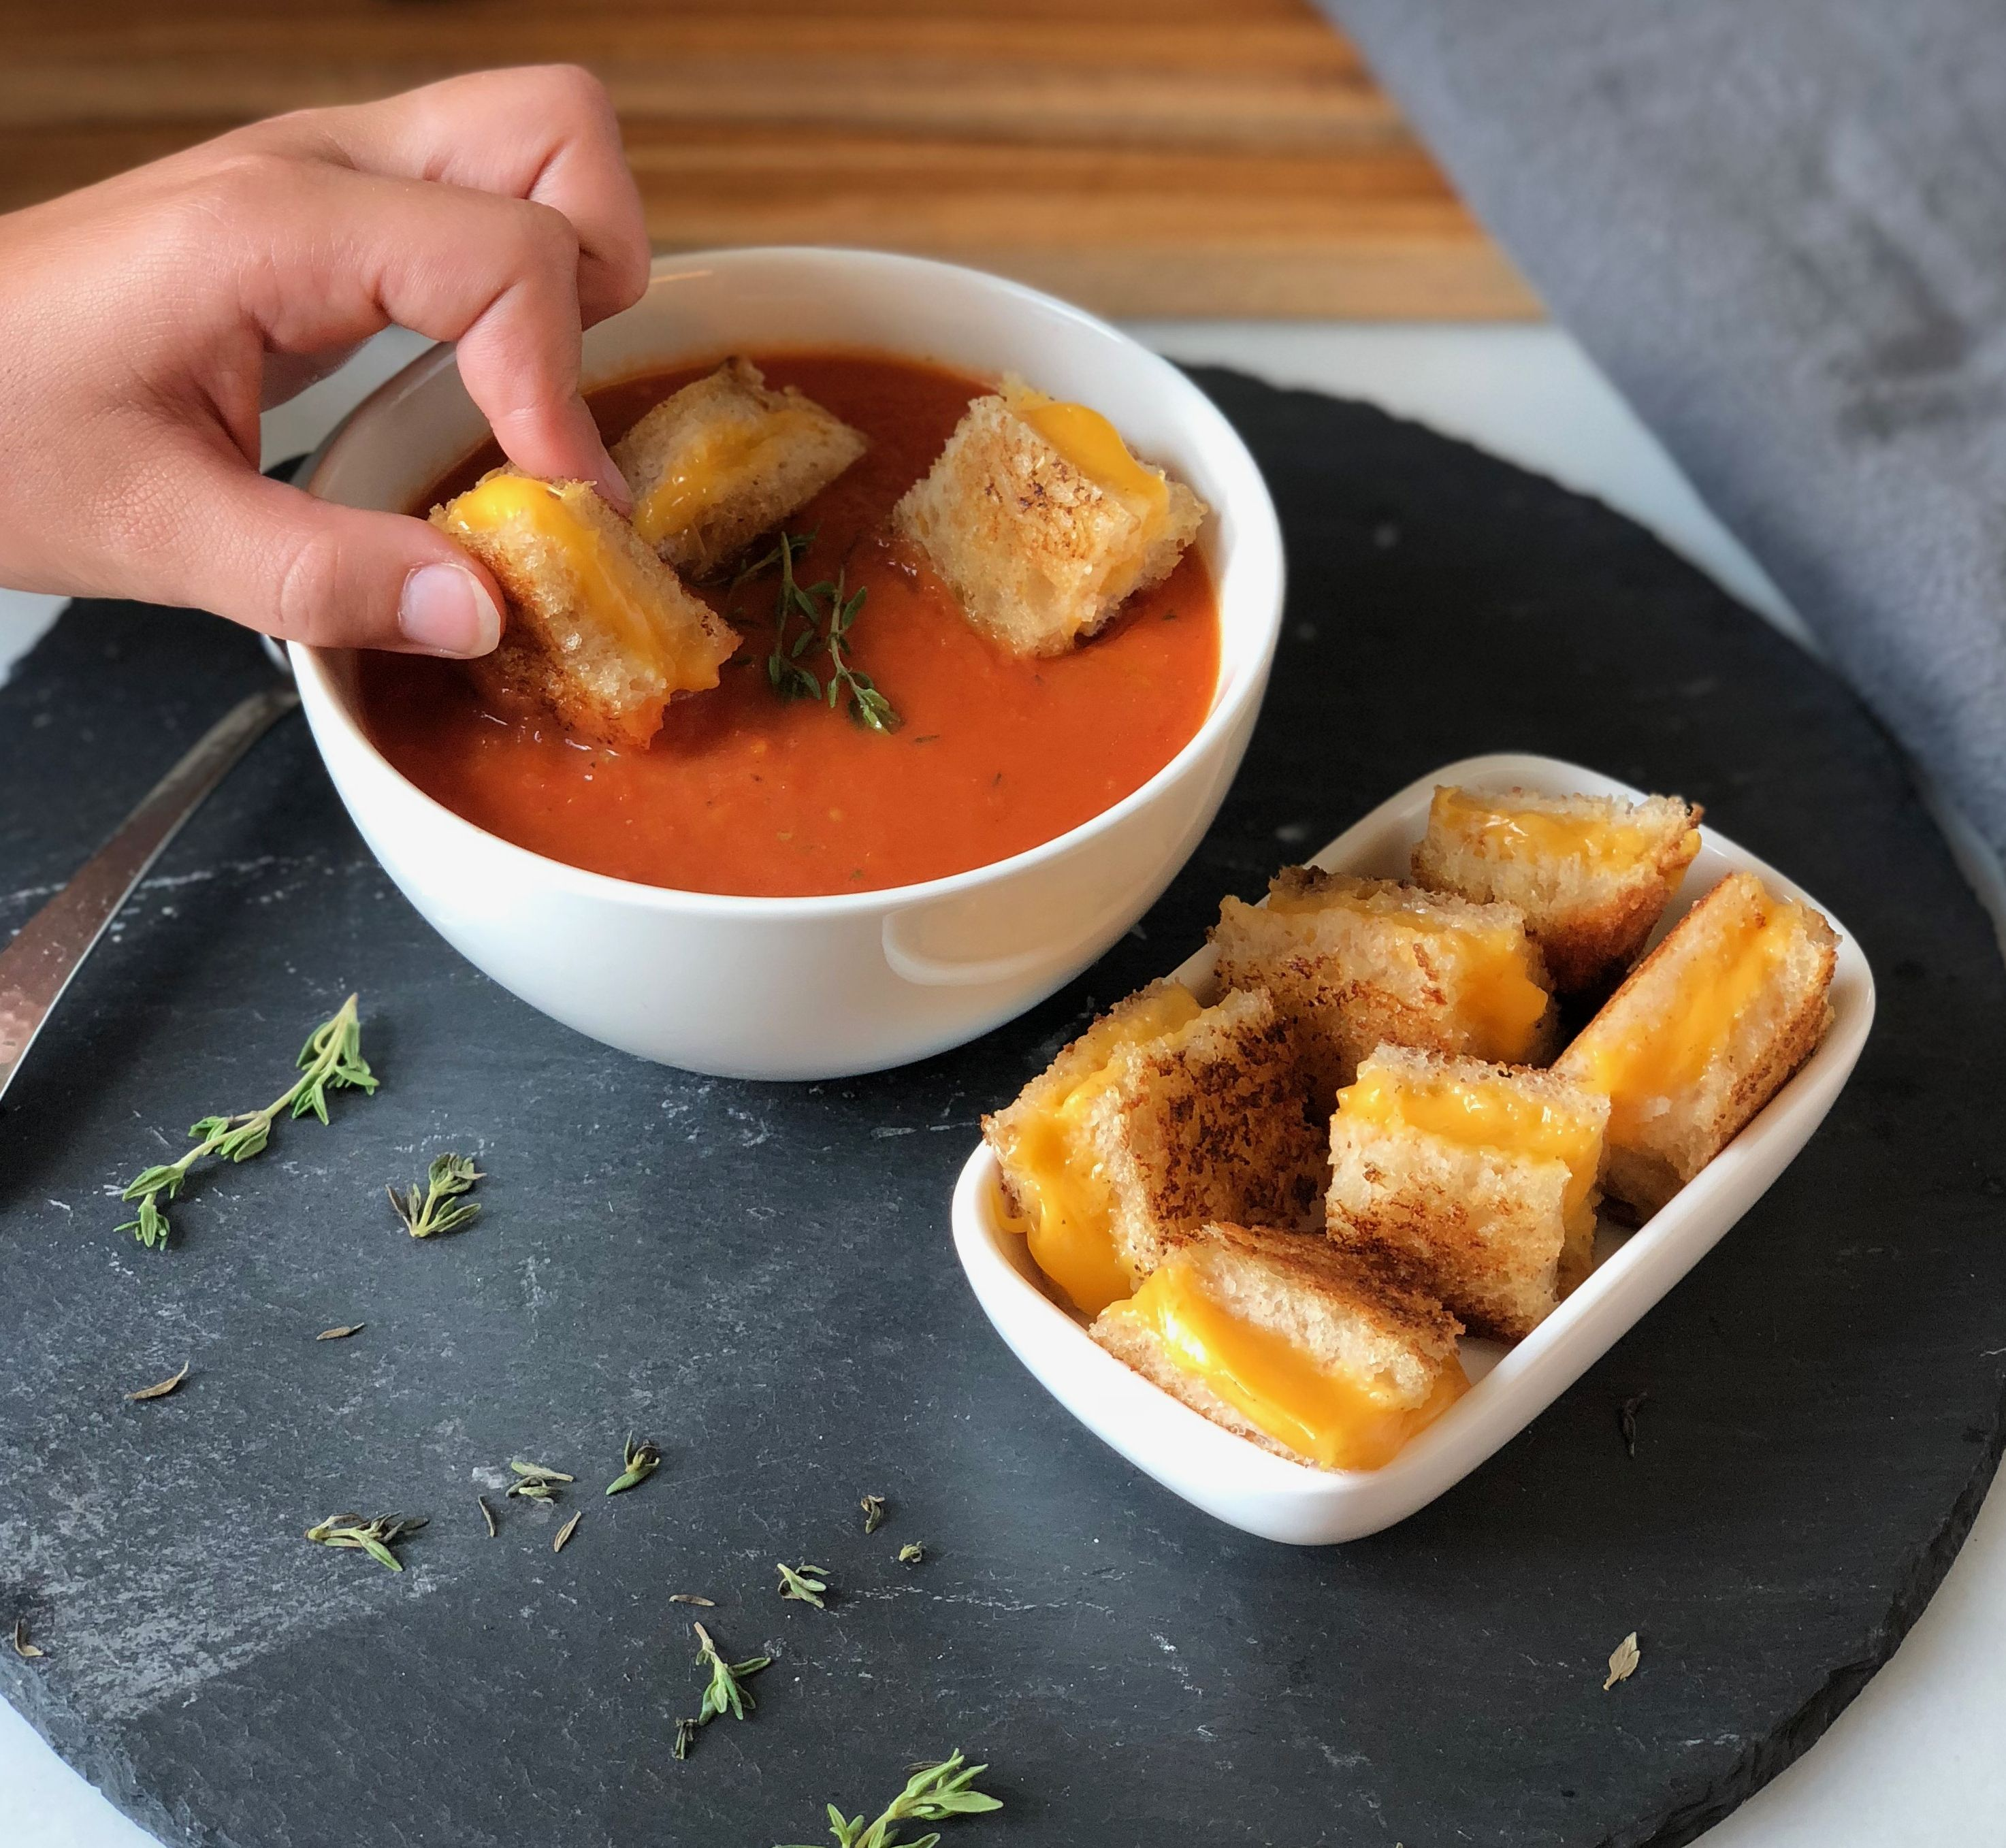 Grilled Cheese Croutons and Roasted Tomato Soup